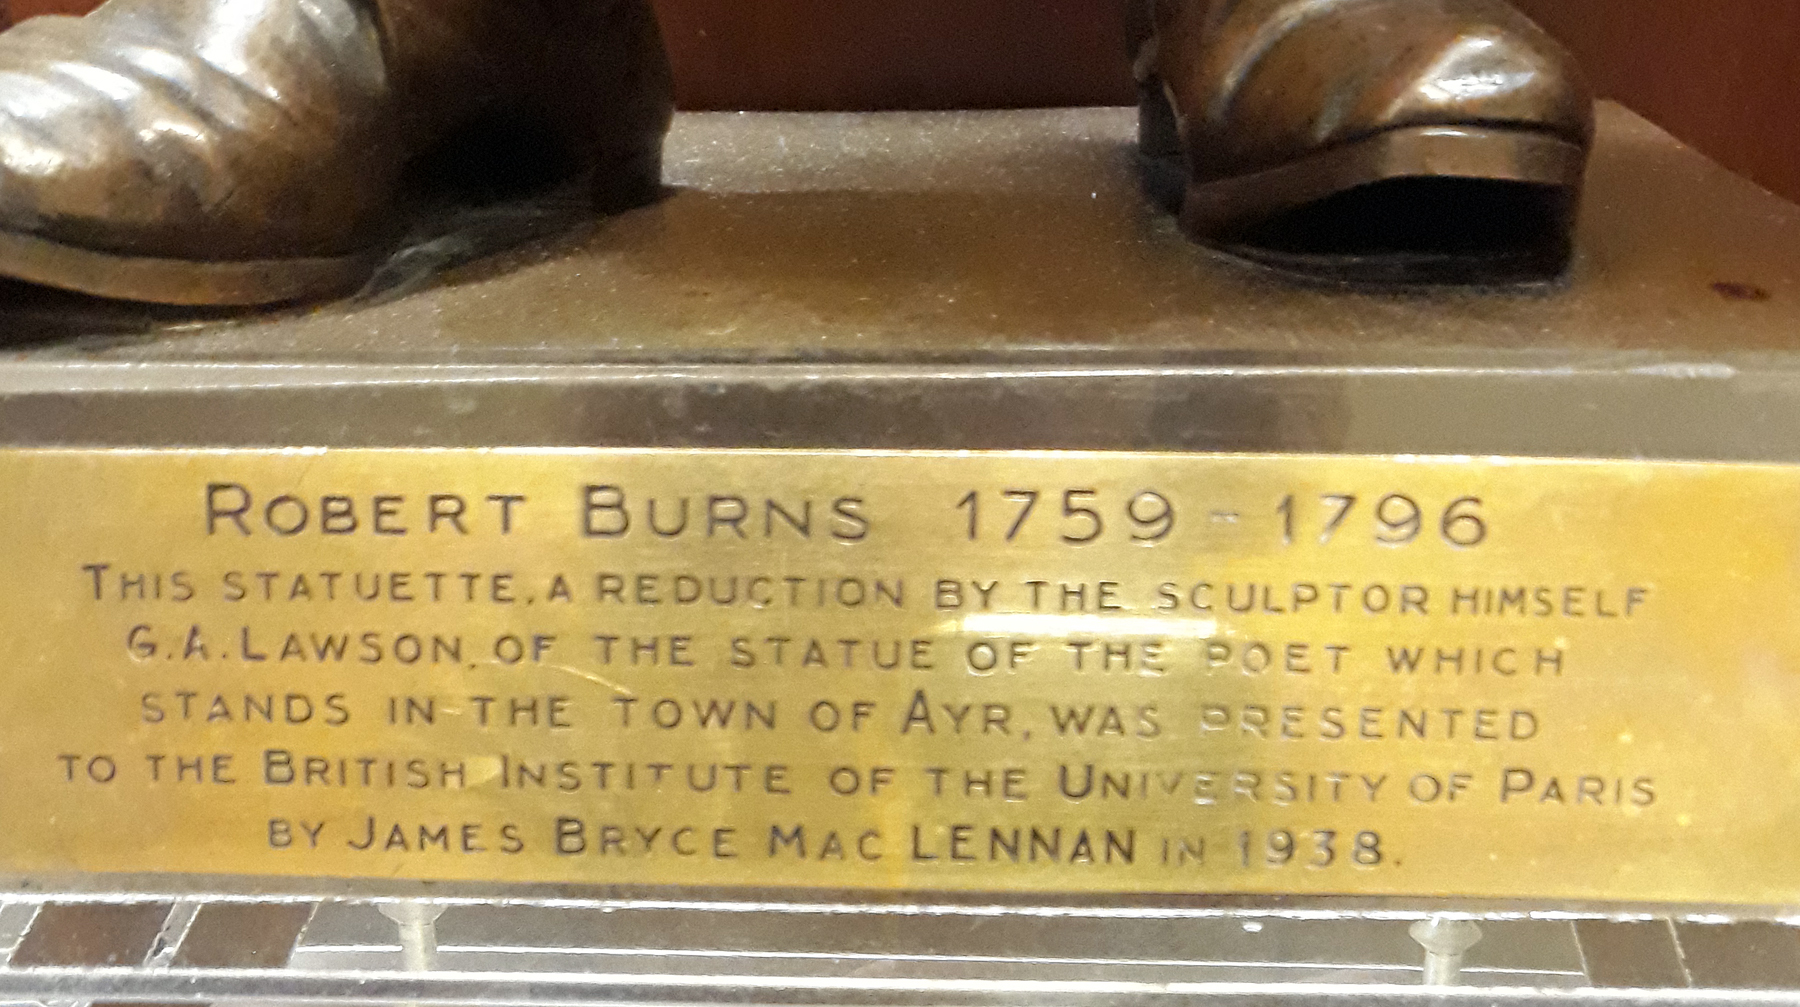 20180122_155925 - Plaque on Statue